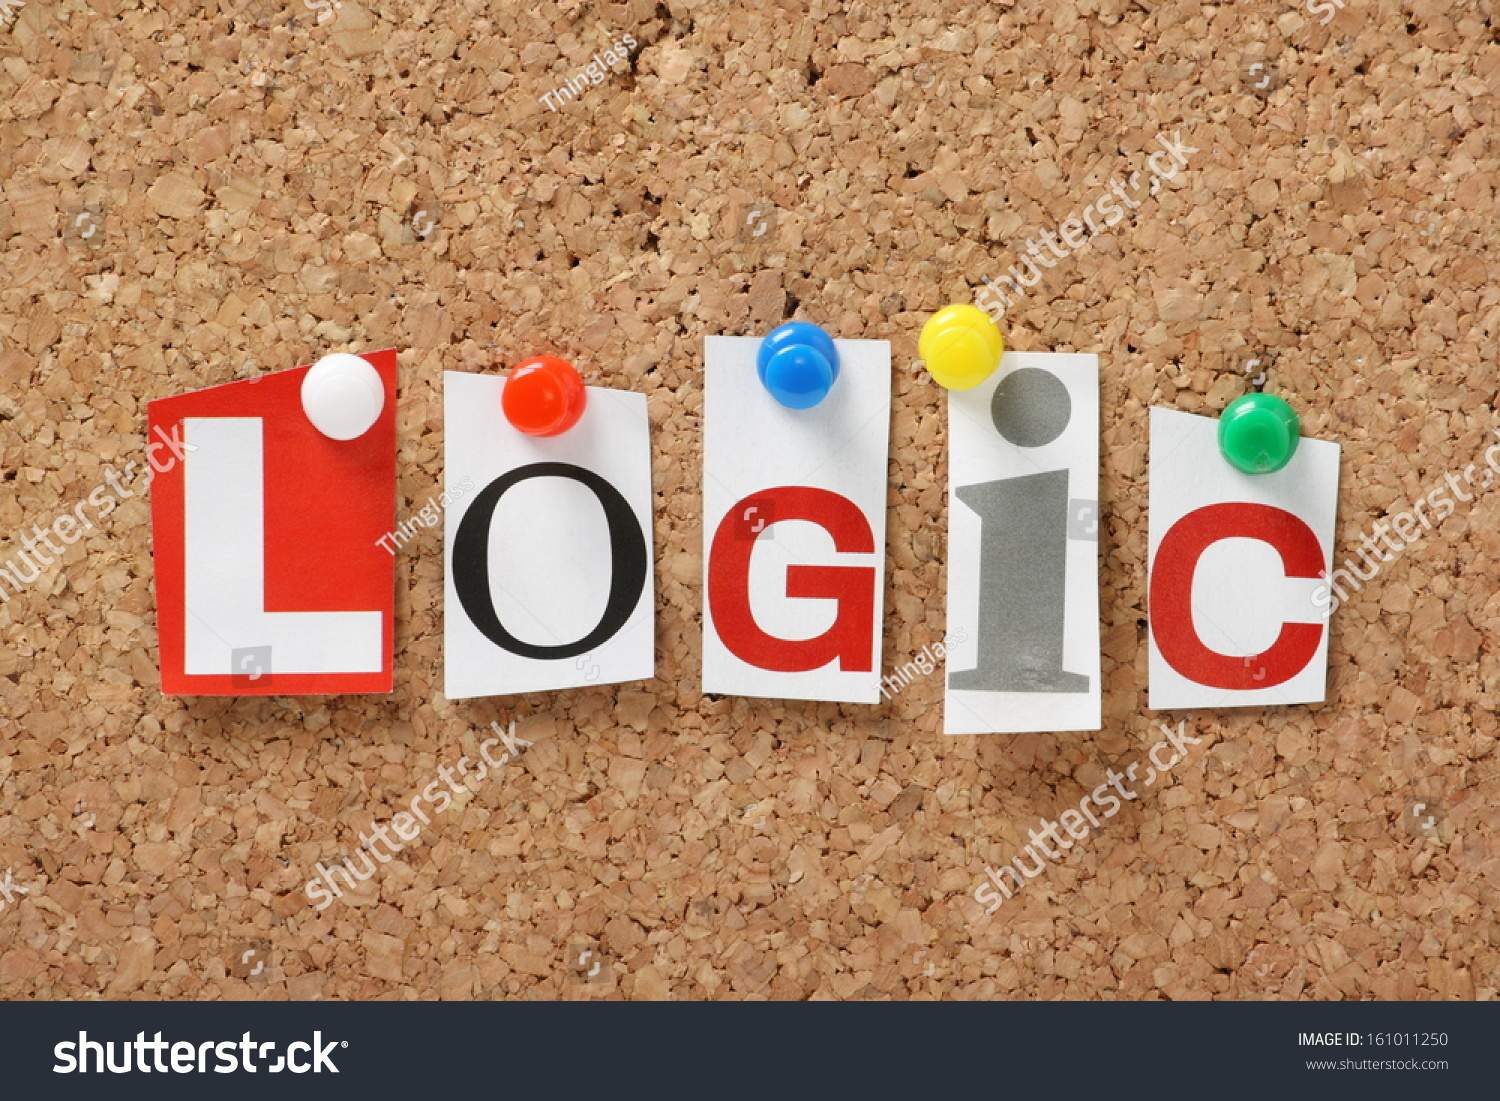 Word Logic Cut Out Magazine Letters Stock Photo